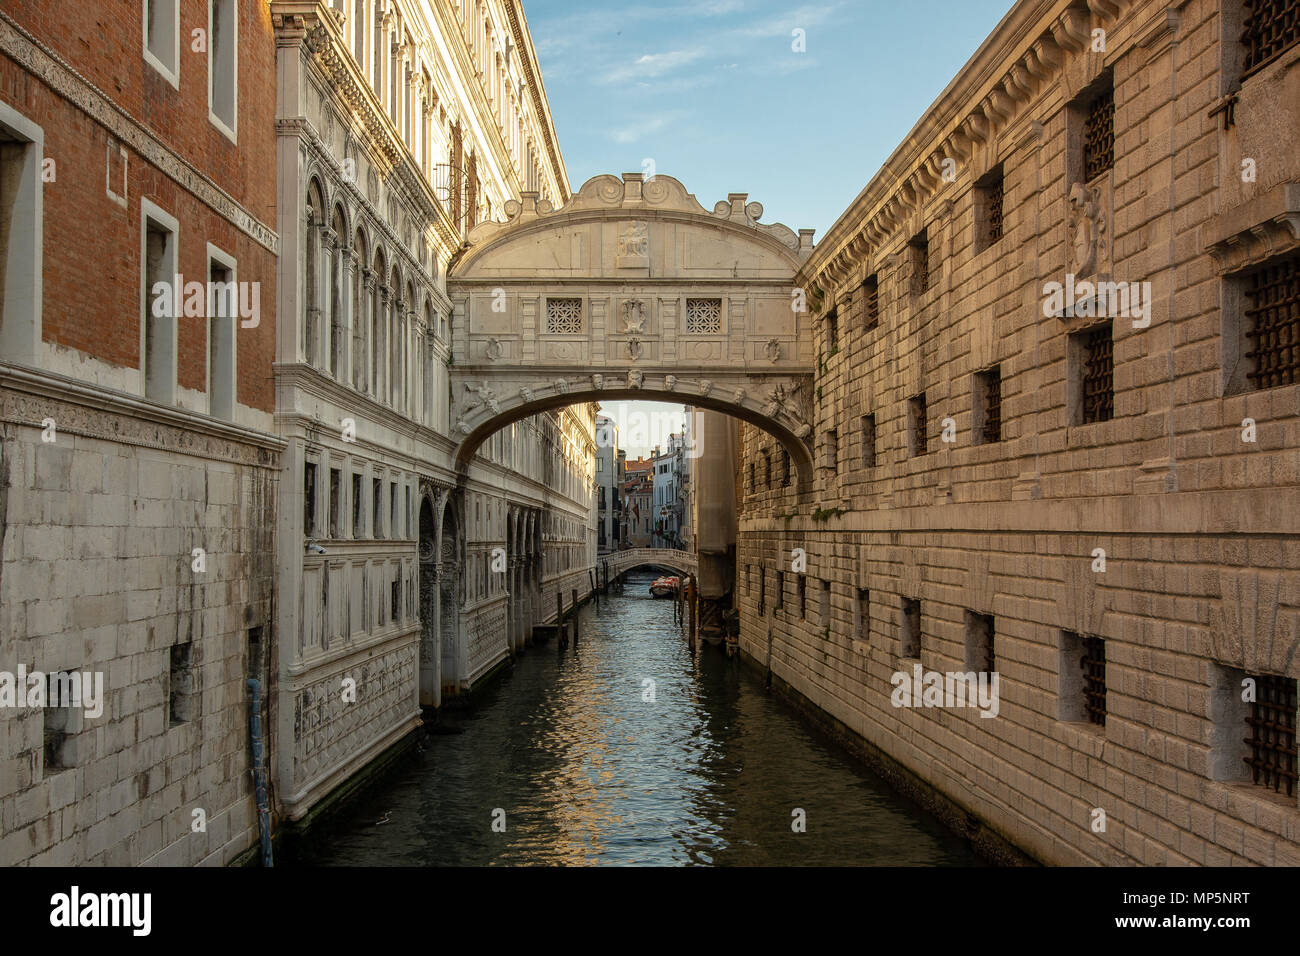 View on the beautiful historic Bridge of Sighs, Venice, Italy Stock Photo